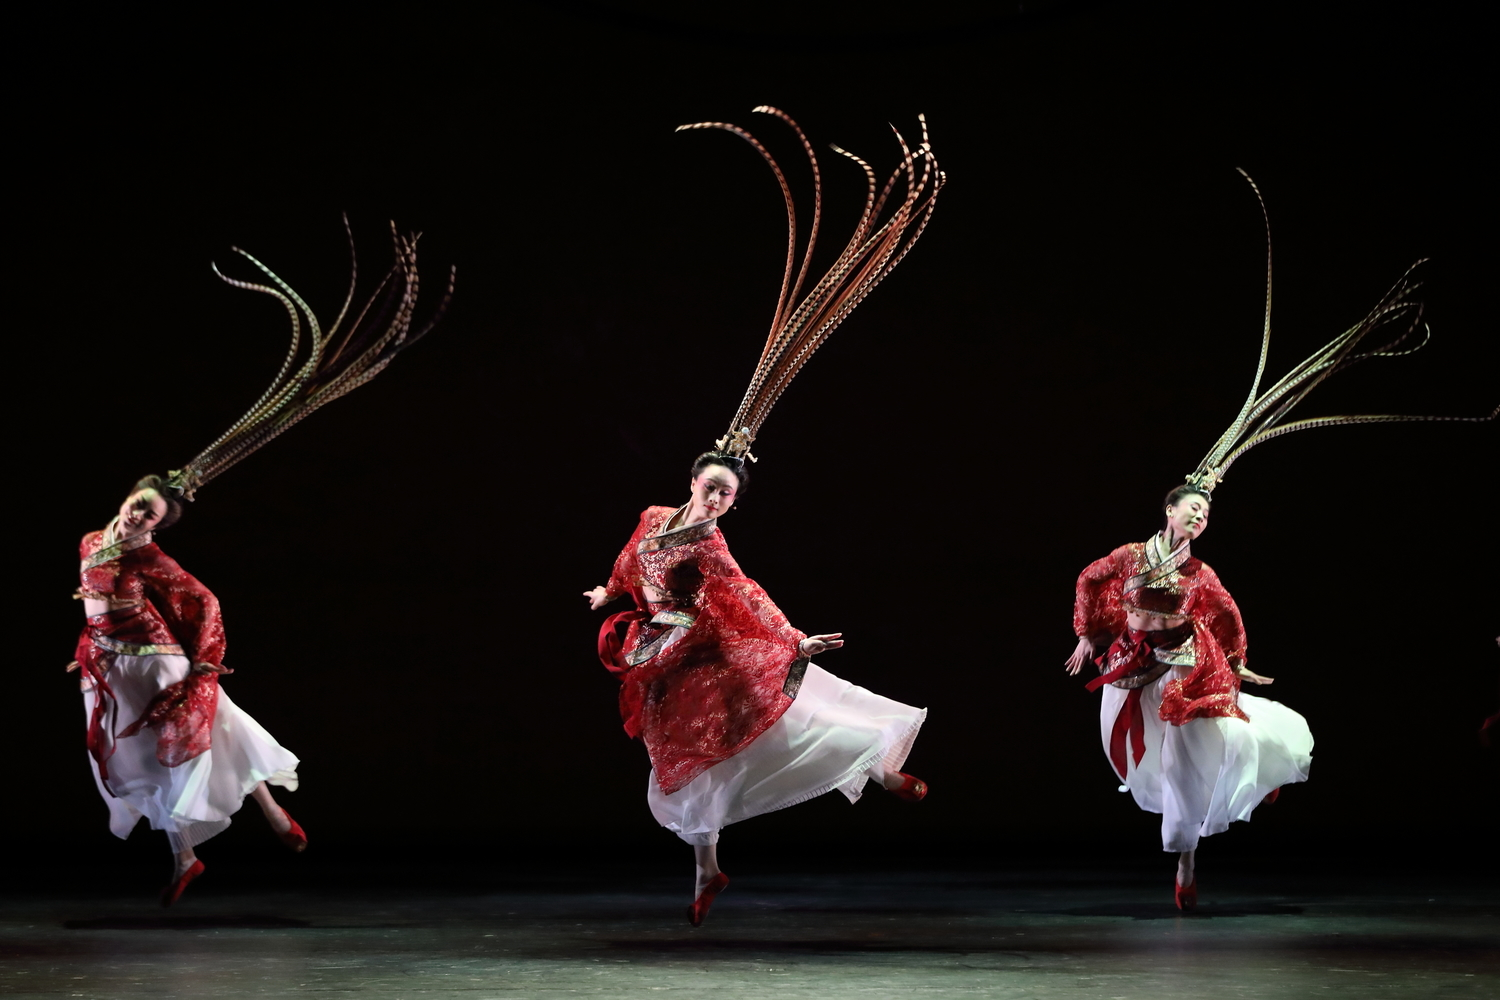 BWW Review: Hong Kong Dance Company regains her strength through BEAUTY BEYOND WORDS at Shatin Town Hall